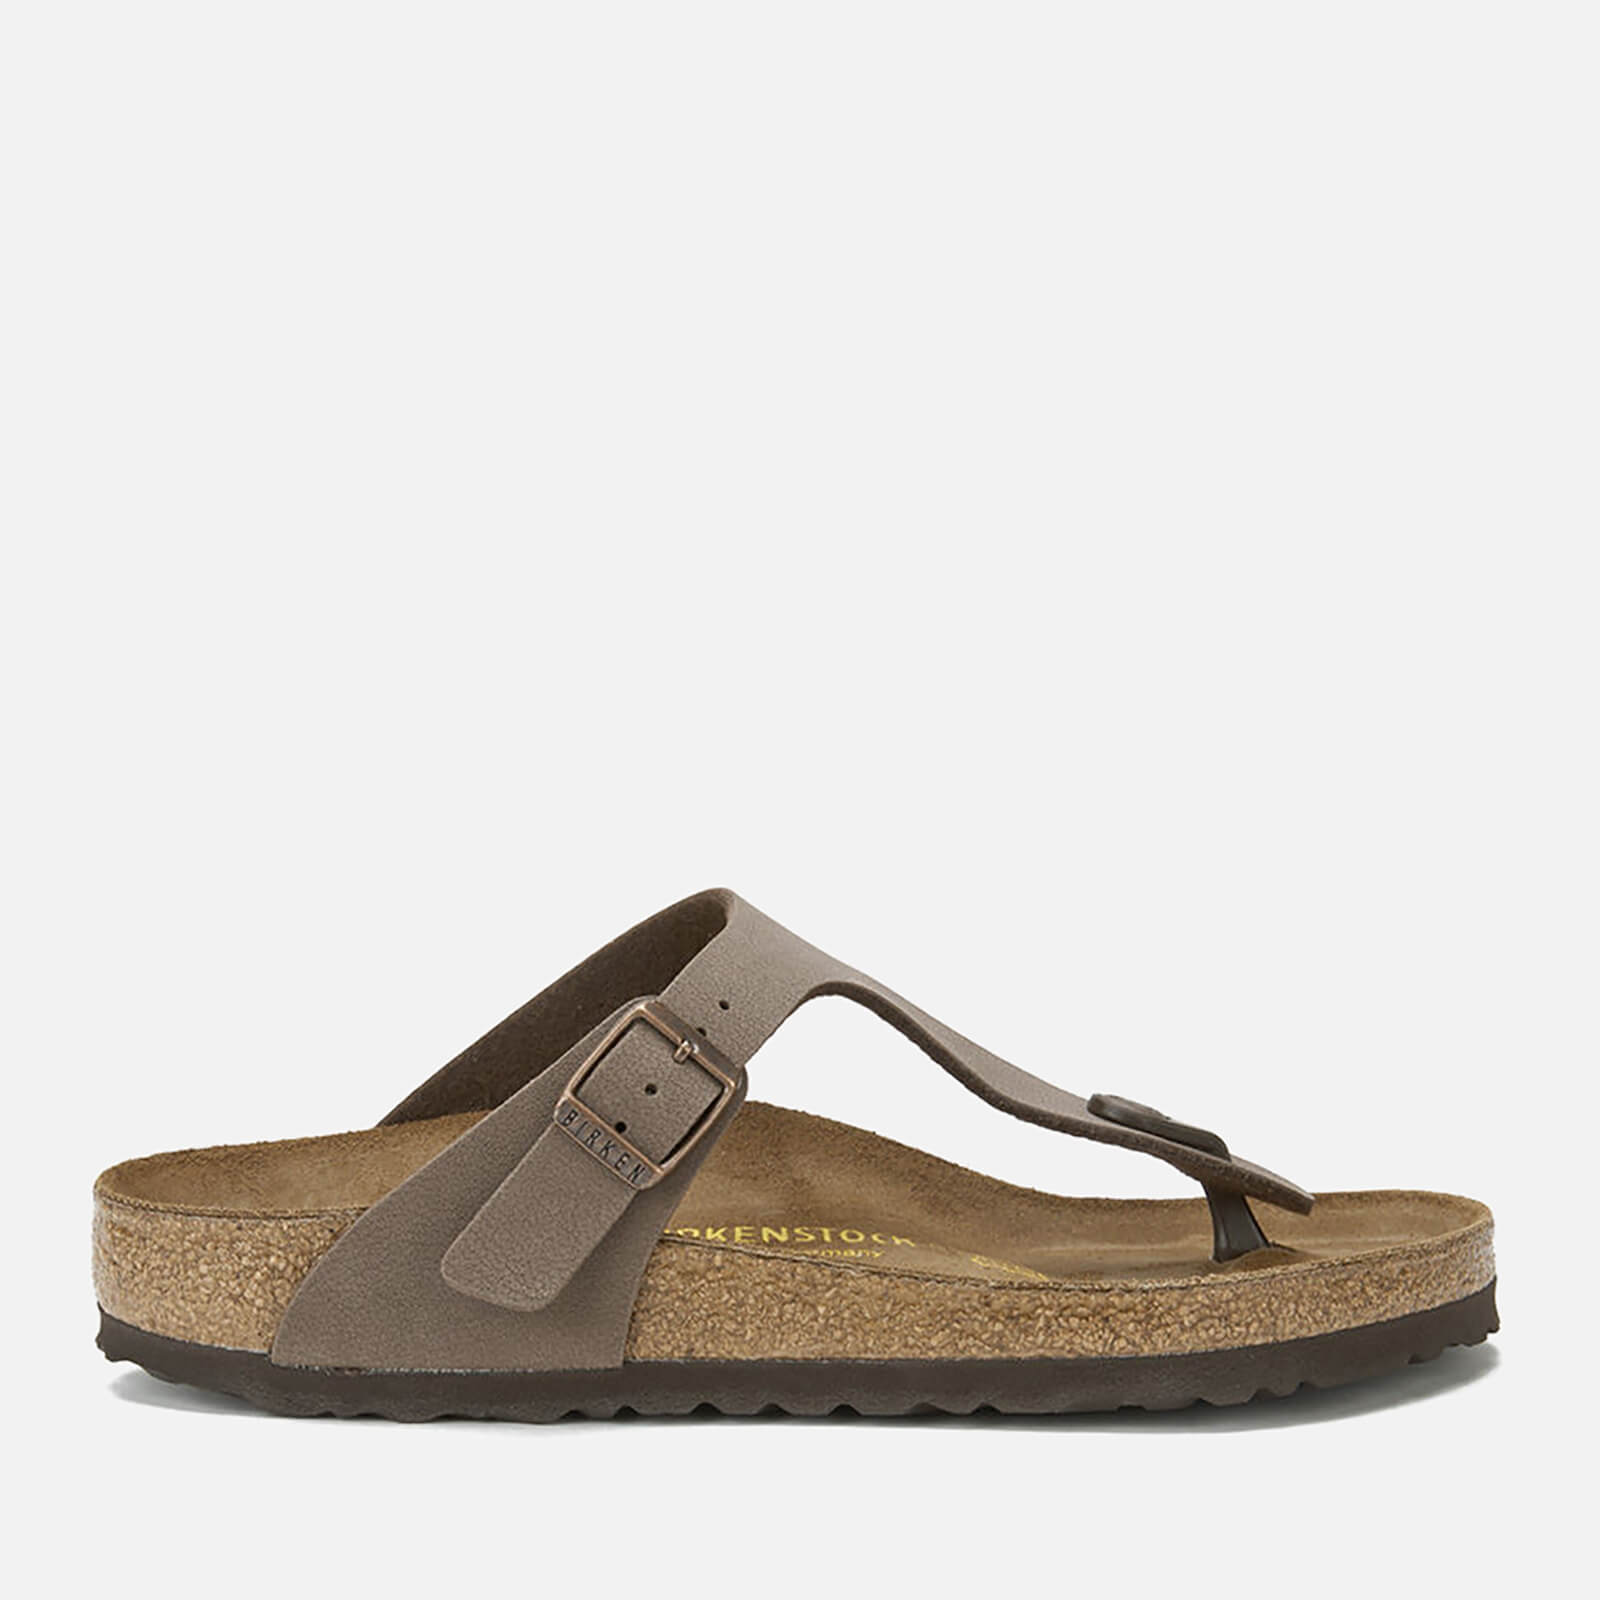 3d3ca65e8 Birkenstock Buyer s Guide  Everything You Need to Know - Allsole